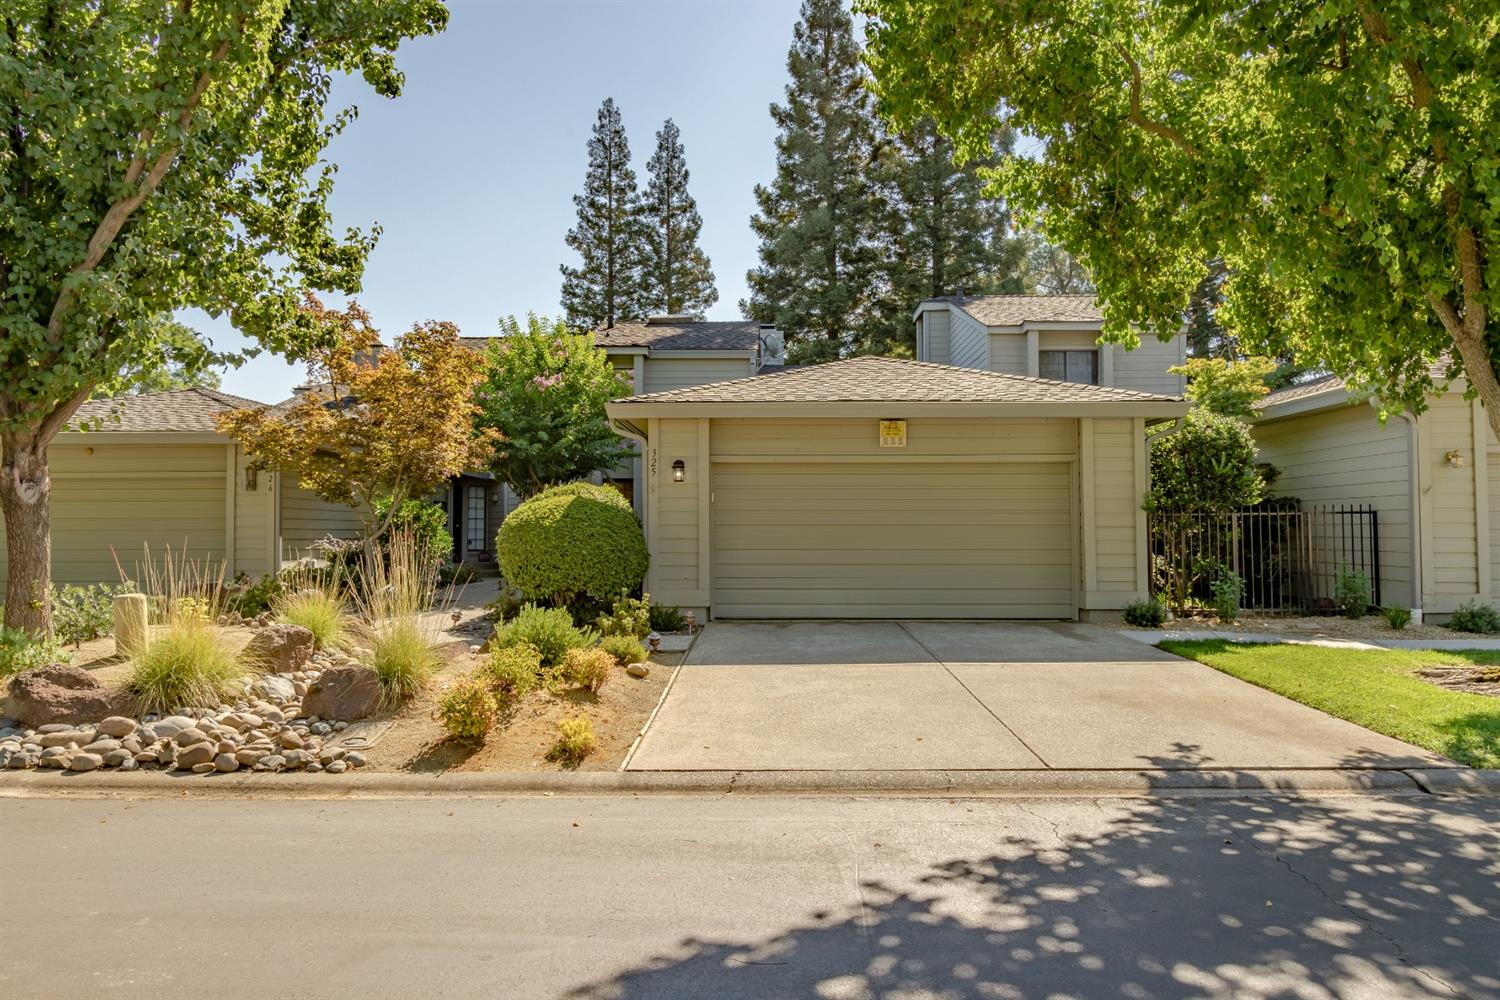 Photo 5 for Listing #221096060